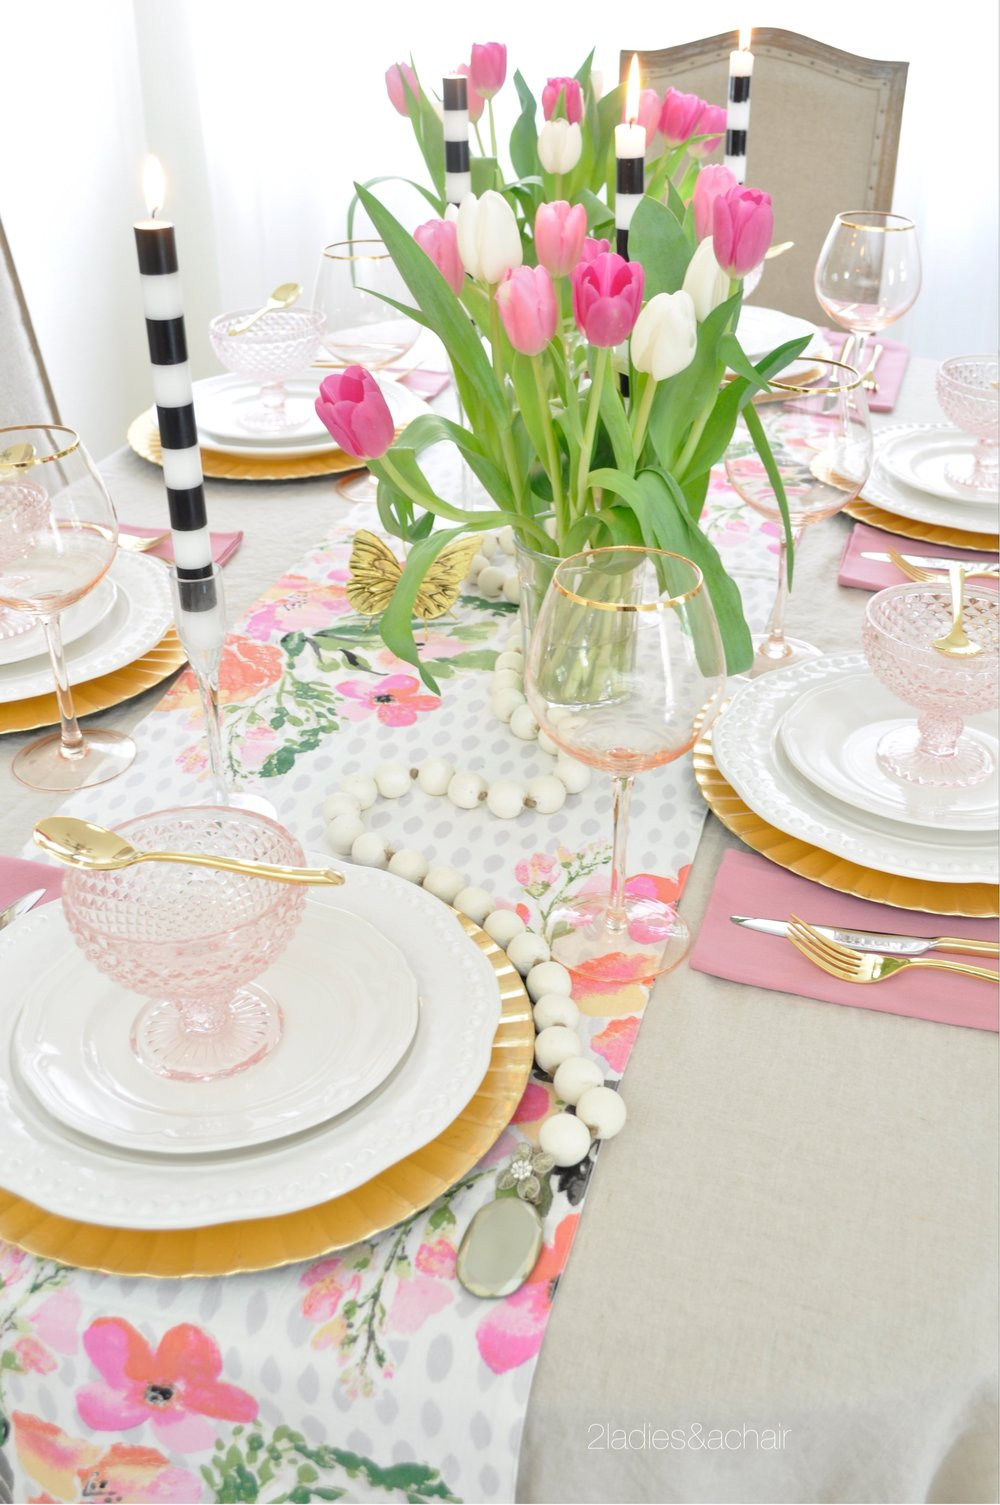 spring tablescape decor IMG_1933.JPG